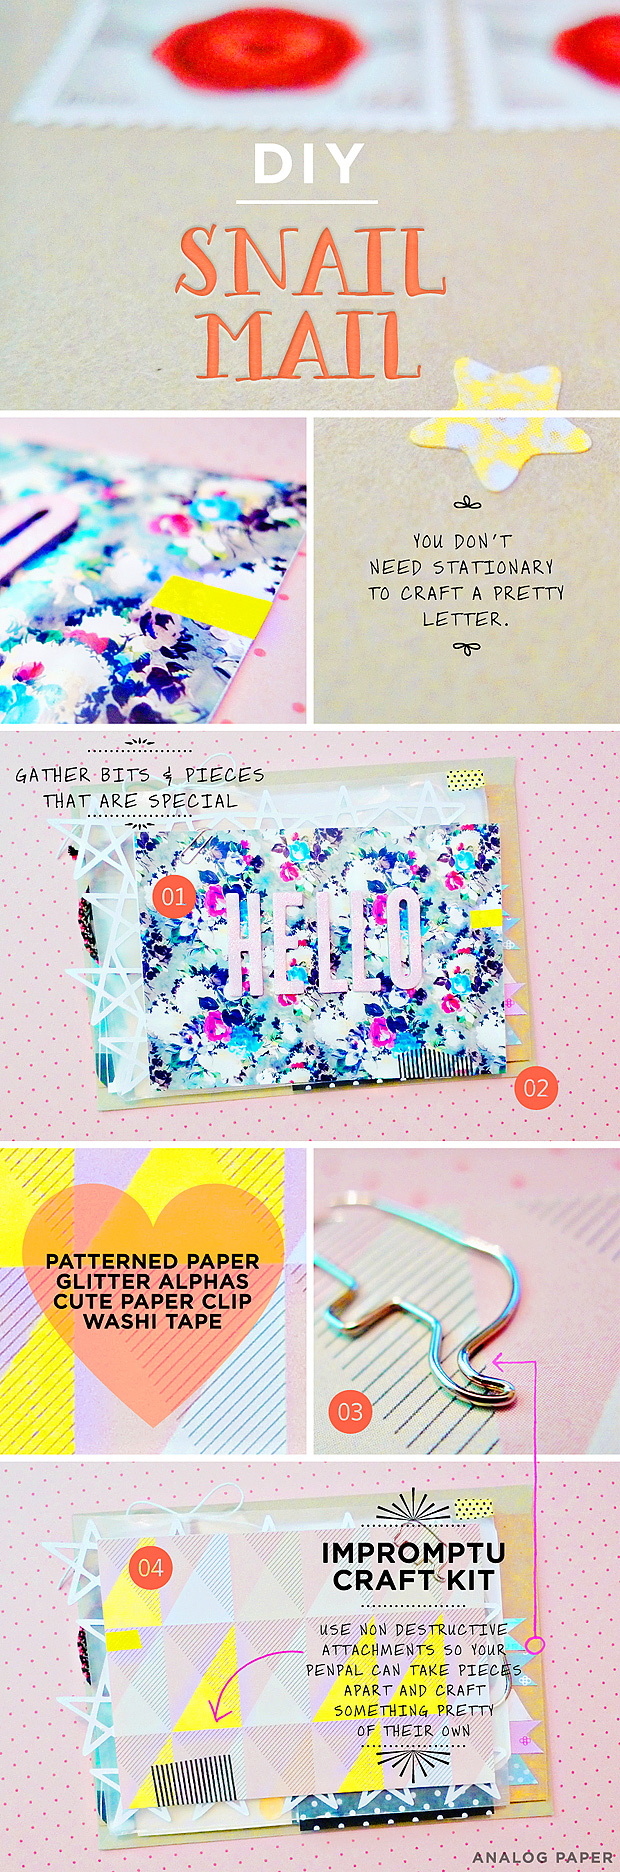 DIY // Snail Mail // Gift Idea // Mini Craft Kit